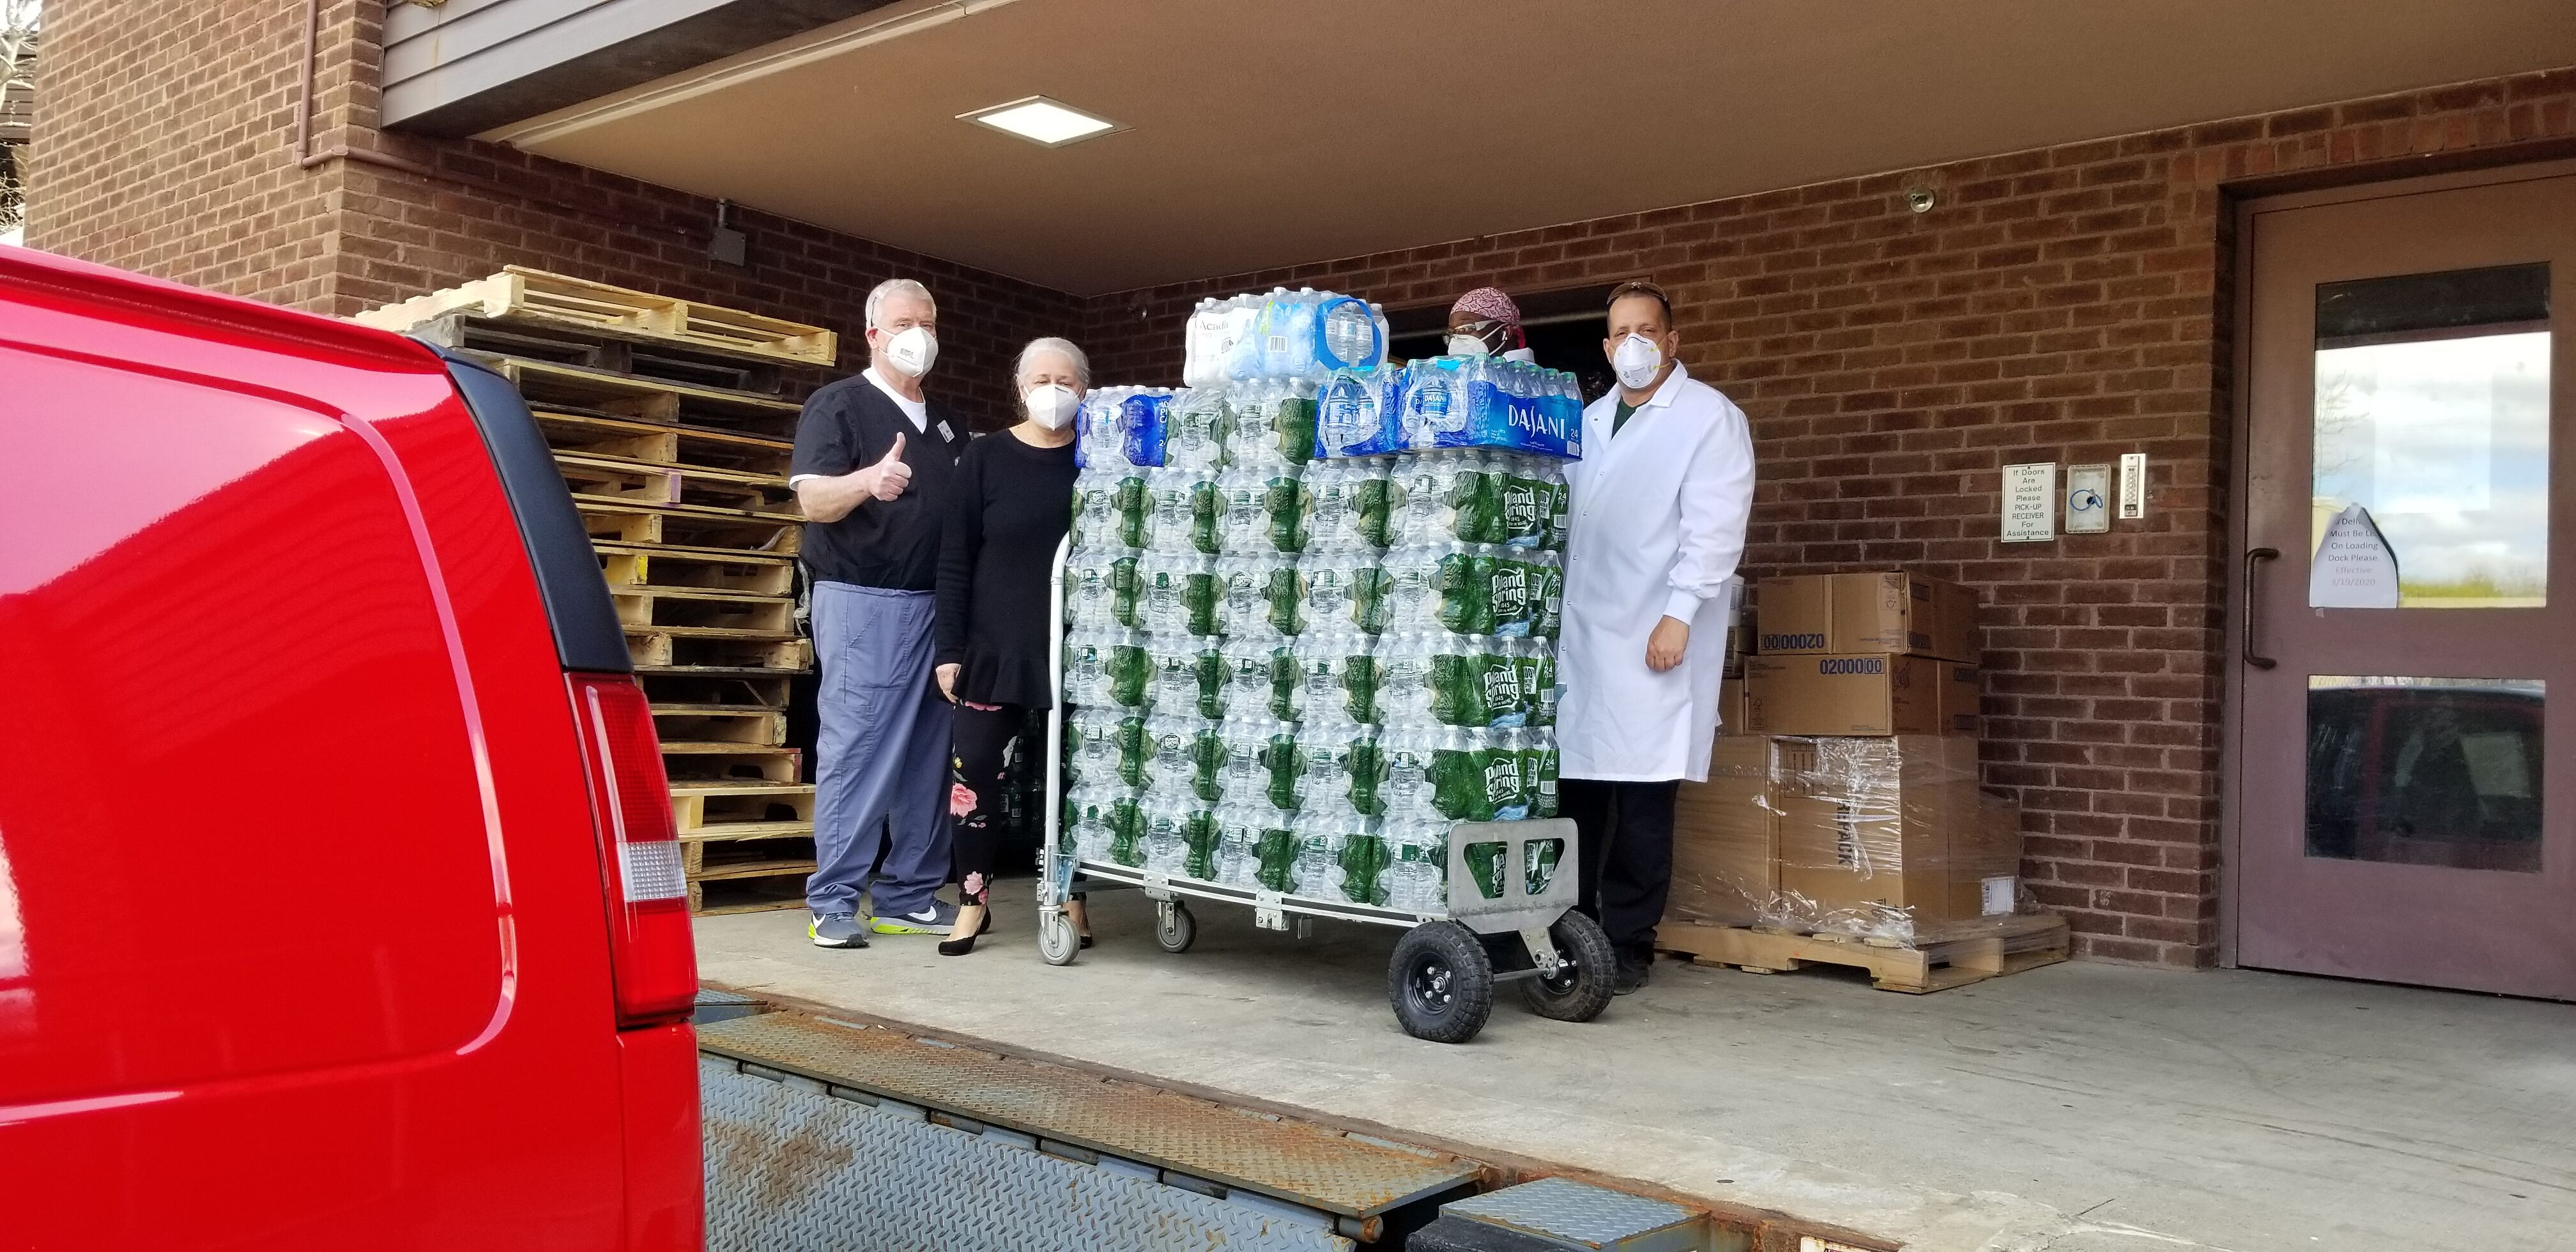 Thanks to Walter Stewarts Market and the New Canaan Moms Facebook Group, Karl Chevrolet was able to deliver bottled water to the front-line Heathcare workers at Waveny Lifecare Network